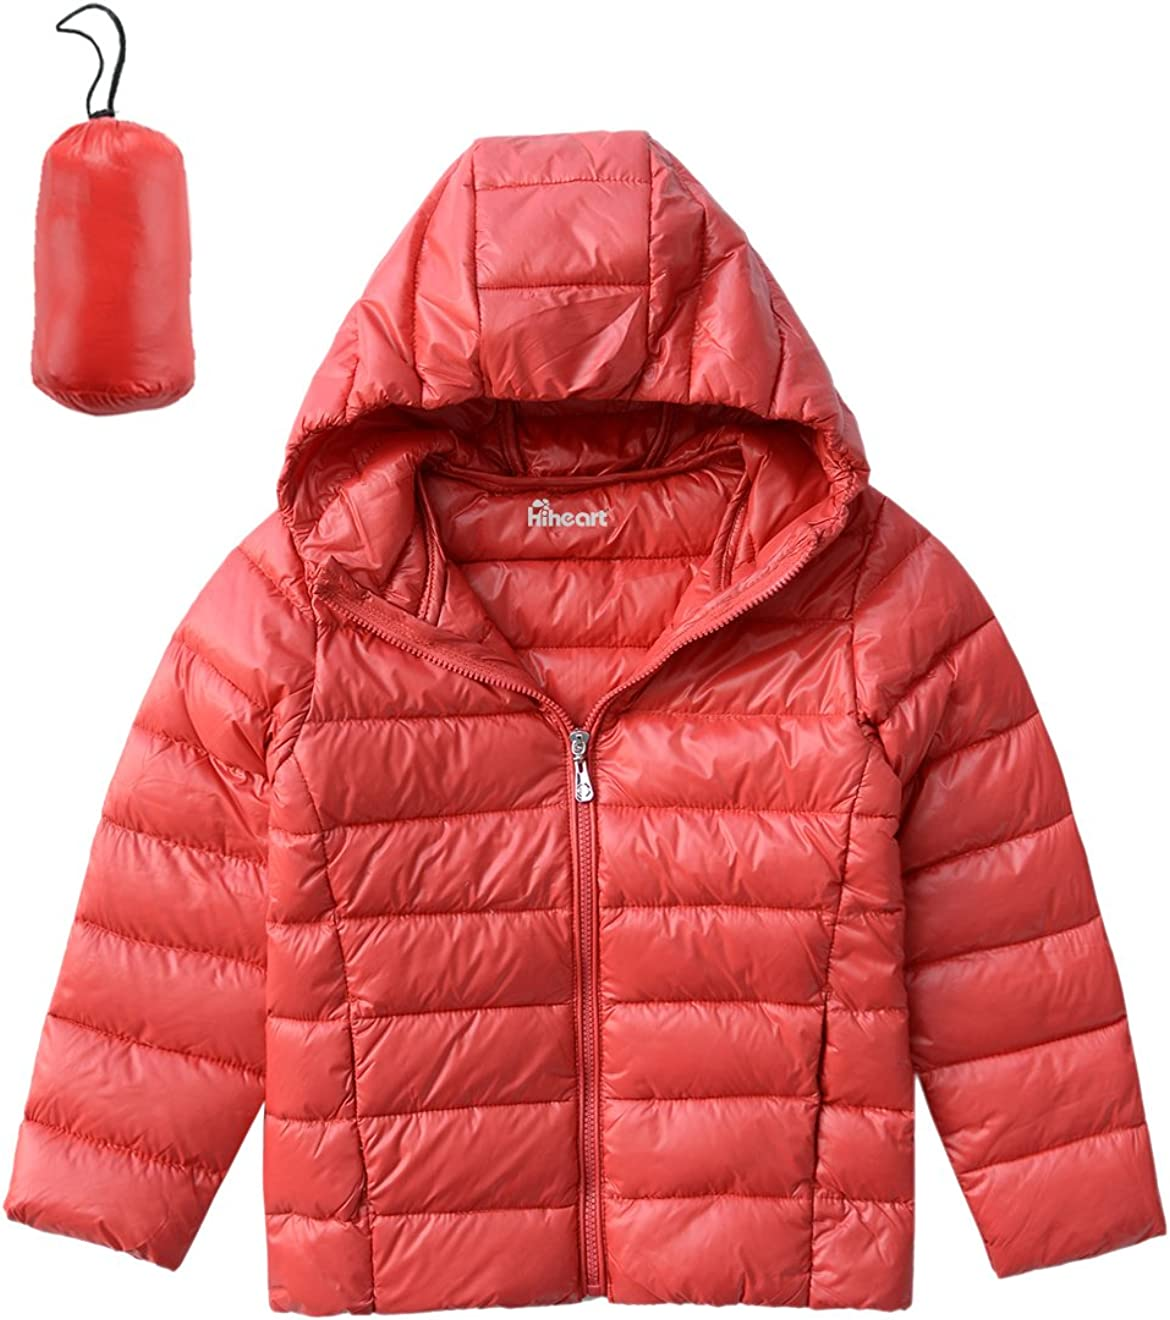 LPATTERN Toddler//Kids Boys Girls Light Puffer Jacket Winter Solid Down Coat Bright Padded Jacket Warm Thick Down Jacket with Unremovable Hood